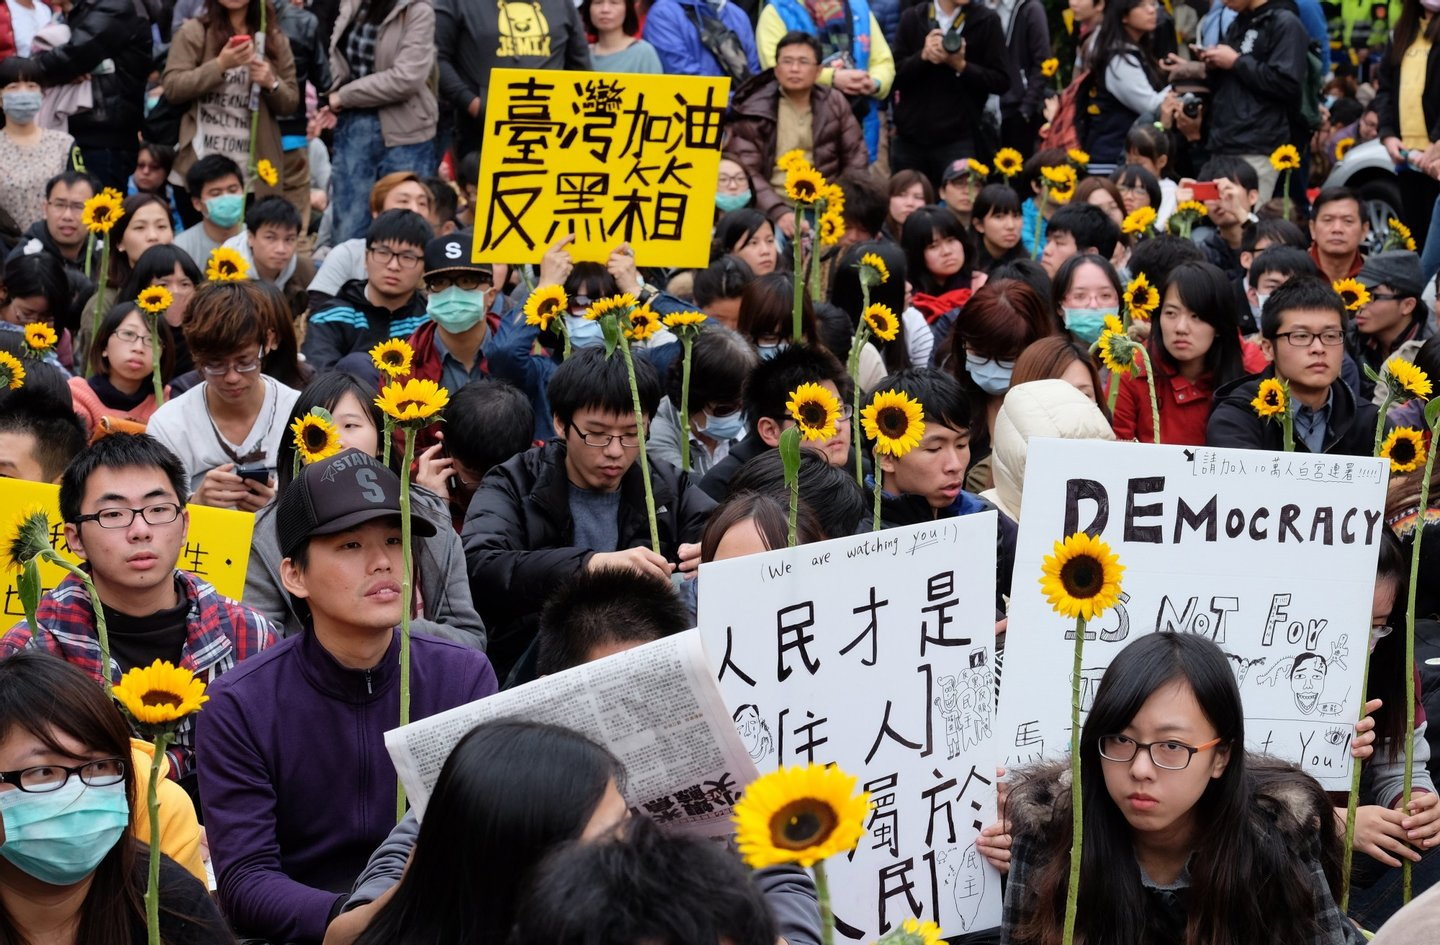 Students display flowers and placards during ongoing protests by thousands of people outside the parliament in Taipei on March 22, 2014. Student protesters occupying Taiwan's legislature to stop the government from ratifying a contentious trade pact with China on March 21 called on the public to surround the ruling party's offices after their ultimatum was ignored. AFP PHOTO / Sam Yeh (Photo credit should read SAM YEH/AFP/Getty Images)